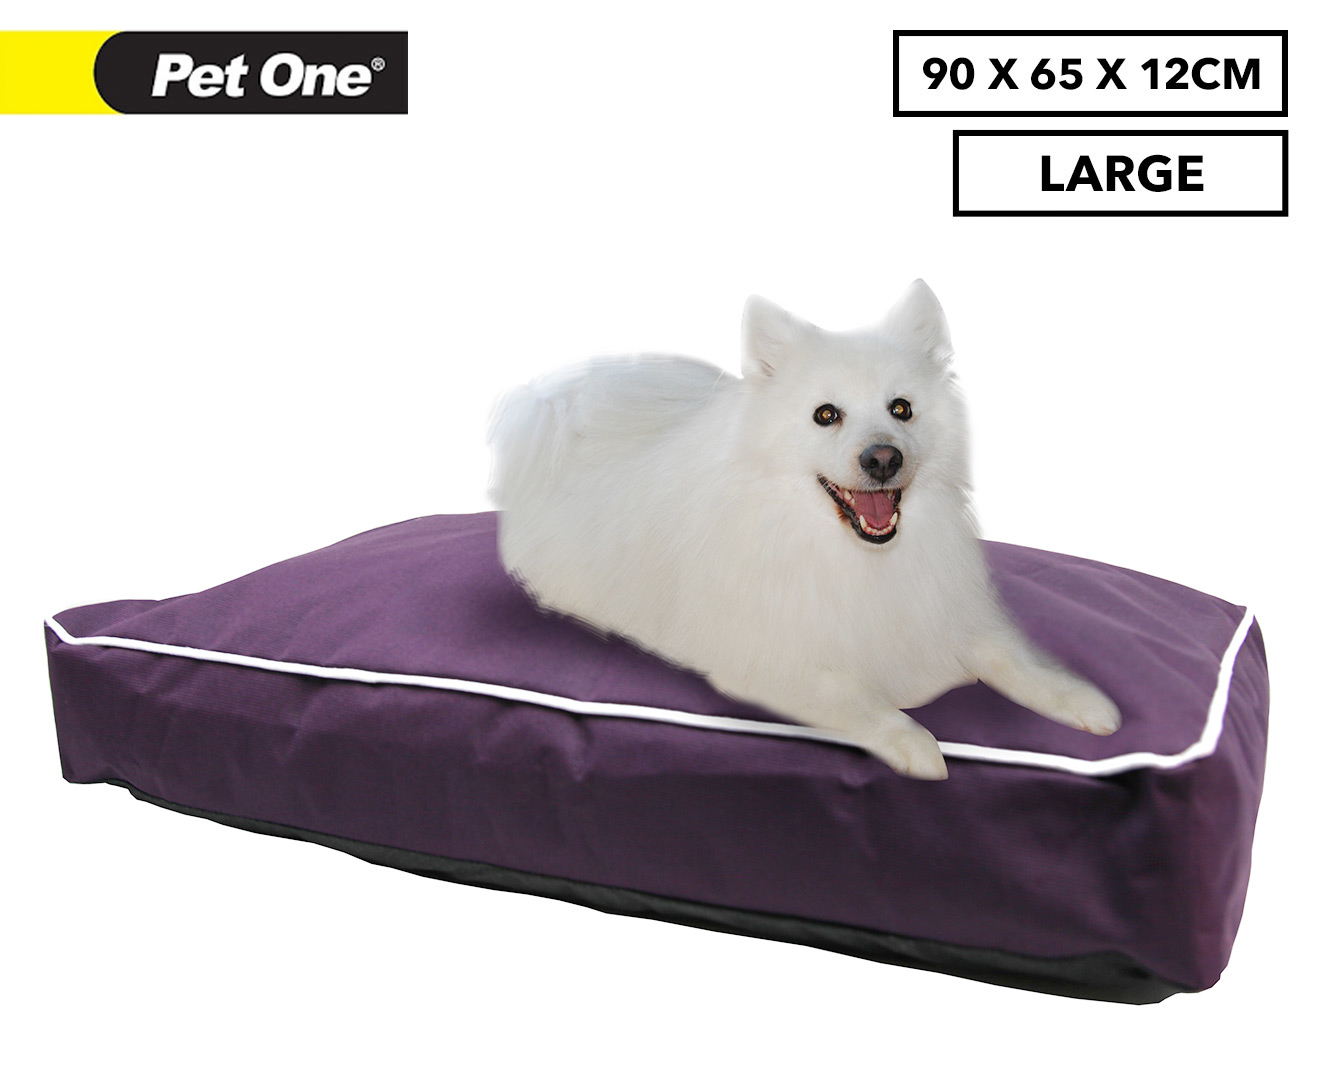 Best Thing To Use As Bedding For Outdoor Dogs